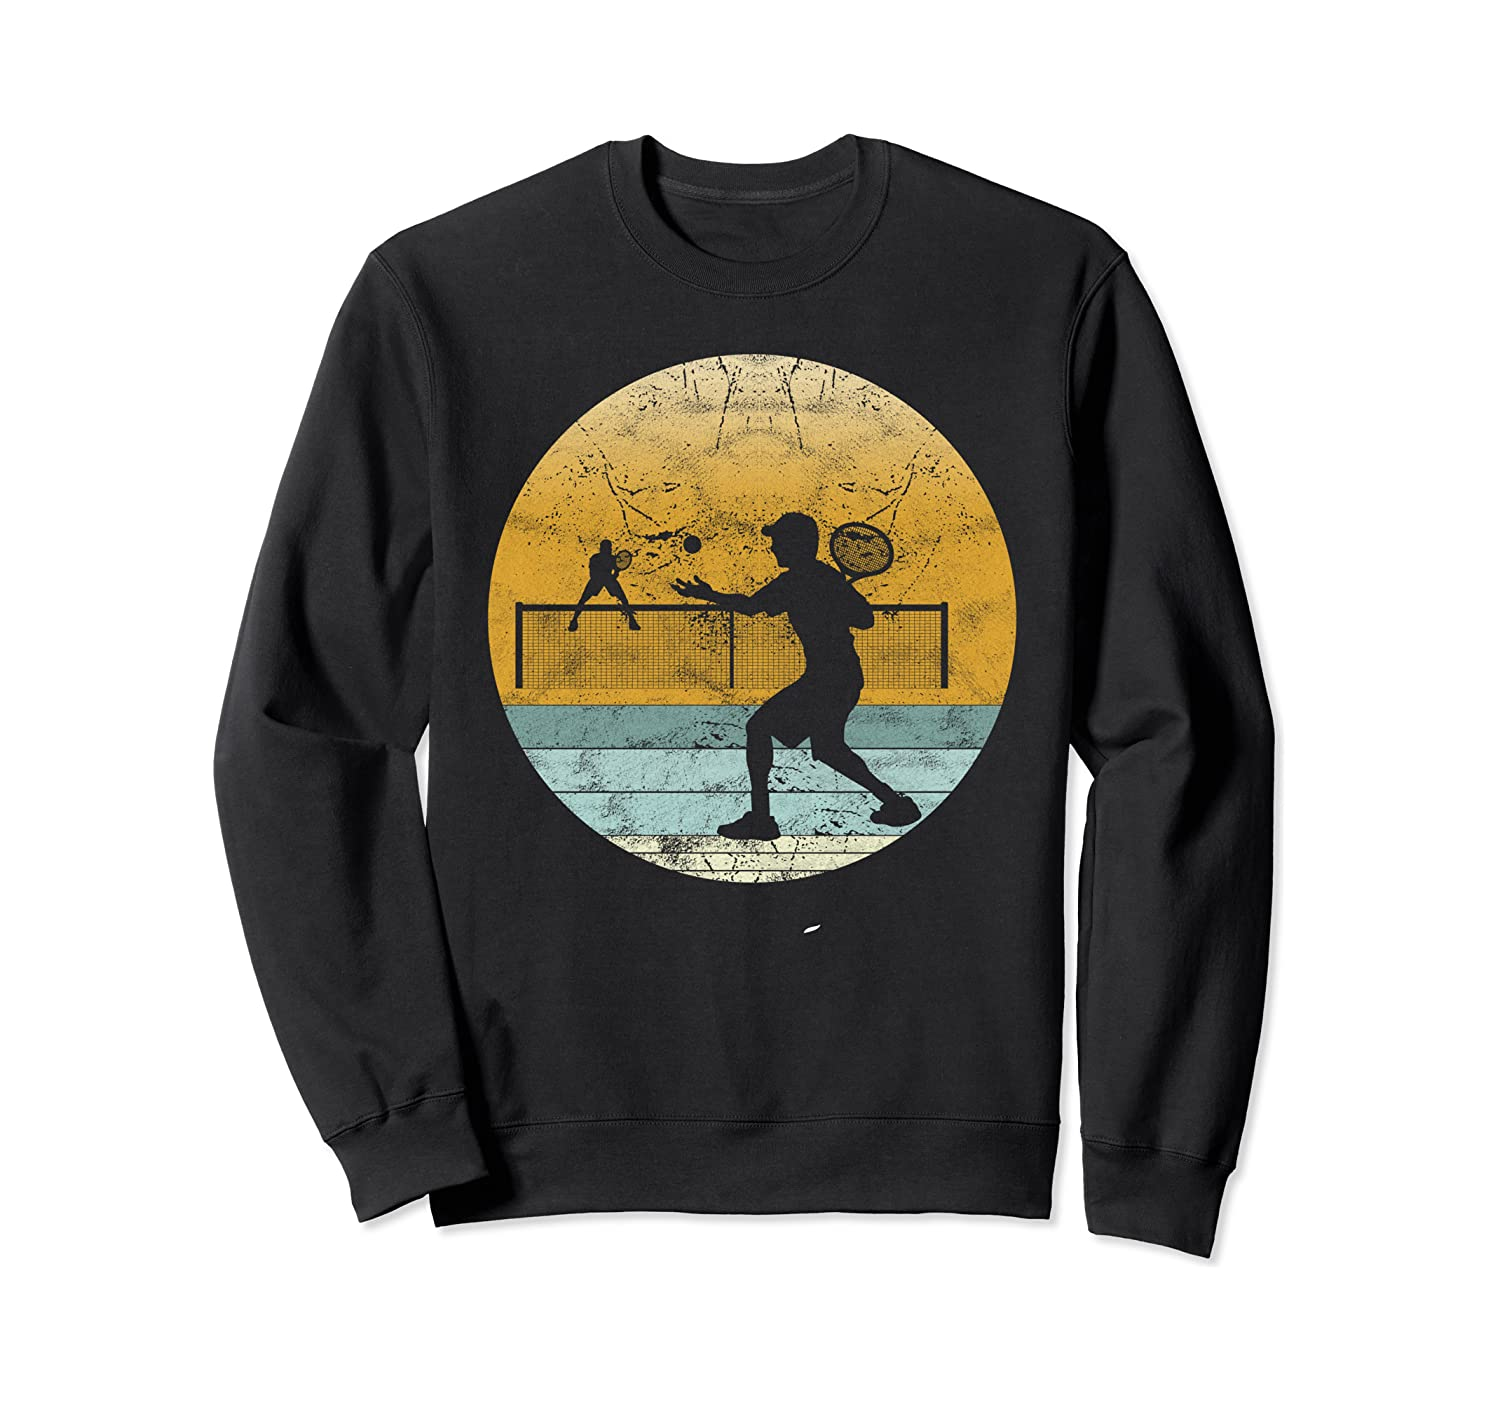 Retro Tennis Vintage Style Sport Player Gift for Men & Women Sweatshirt